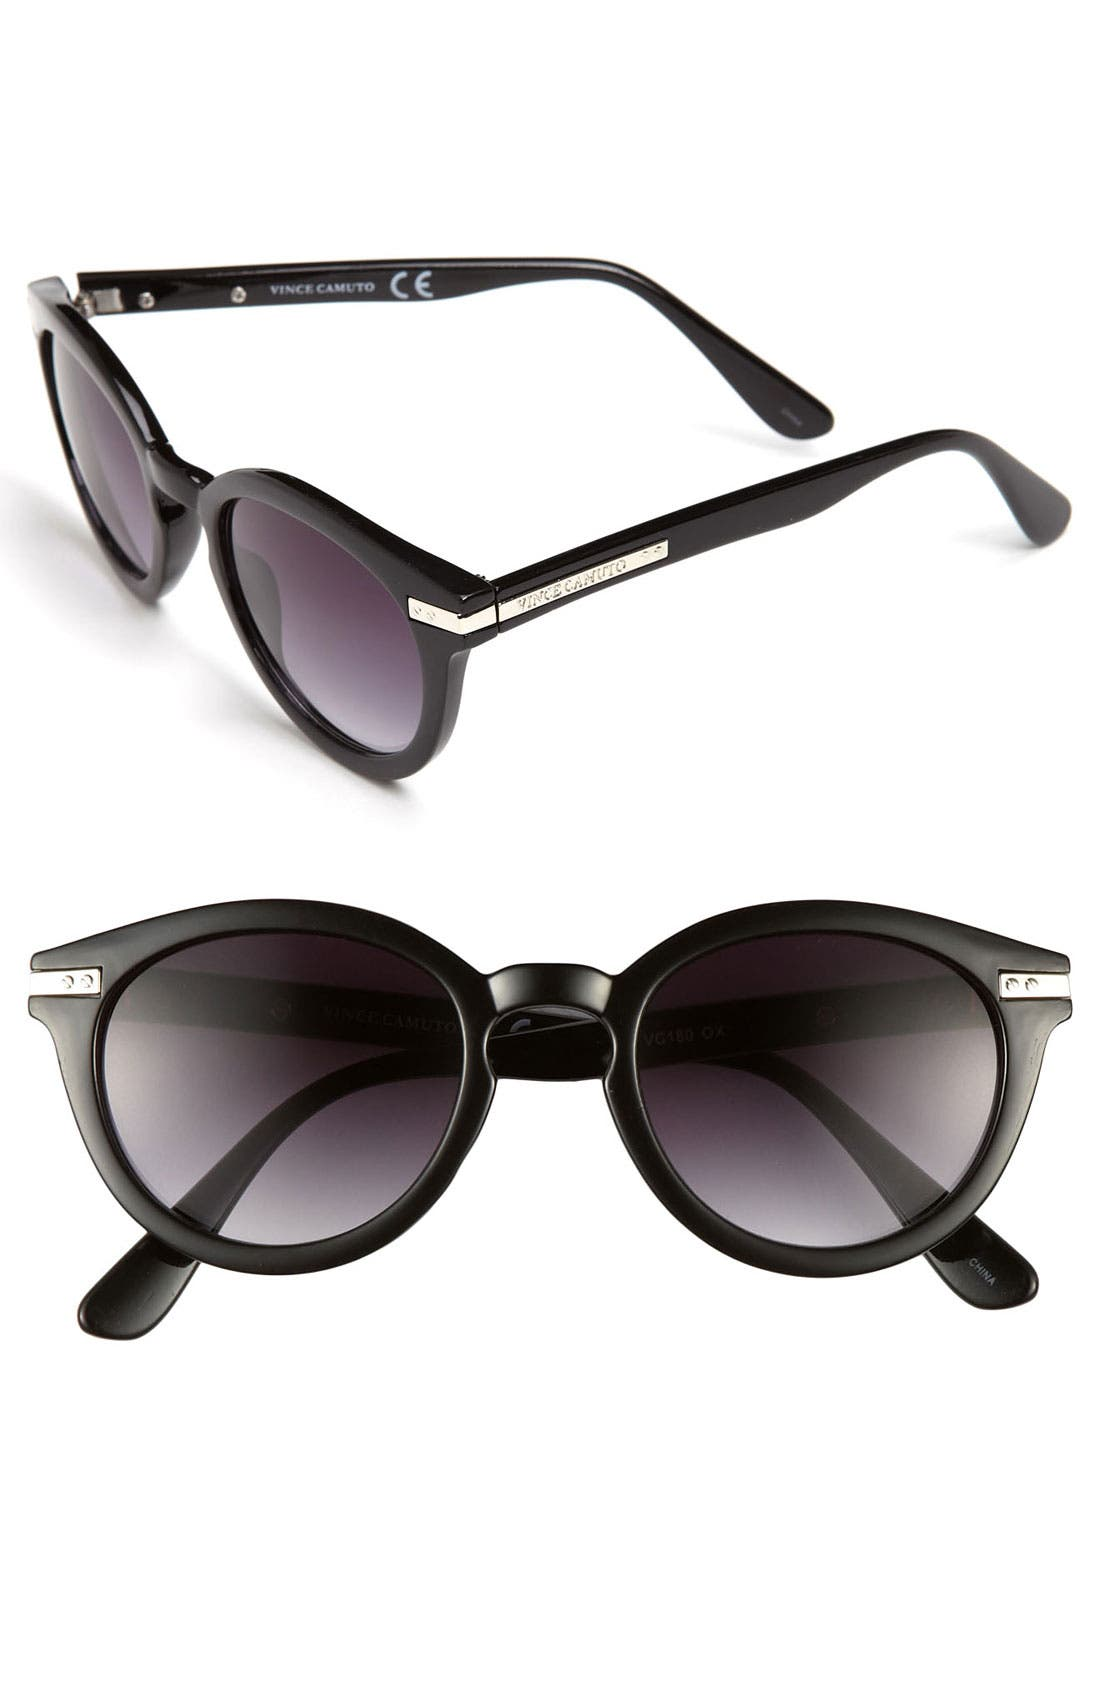 Main Image - Vince Camuto 50mm Vintage Round Sunglasses